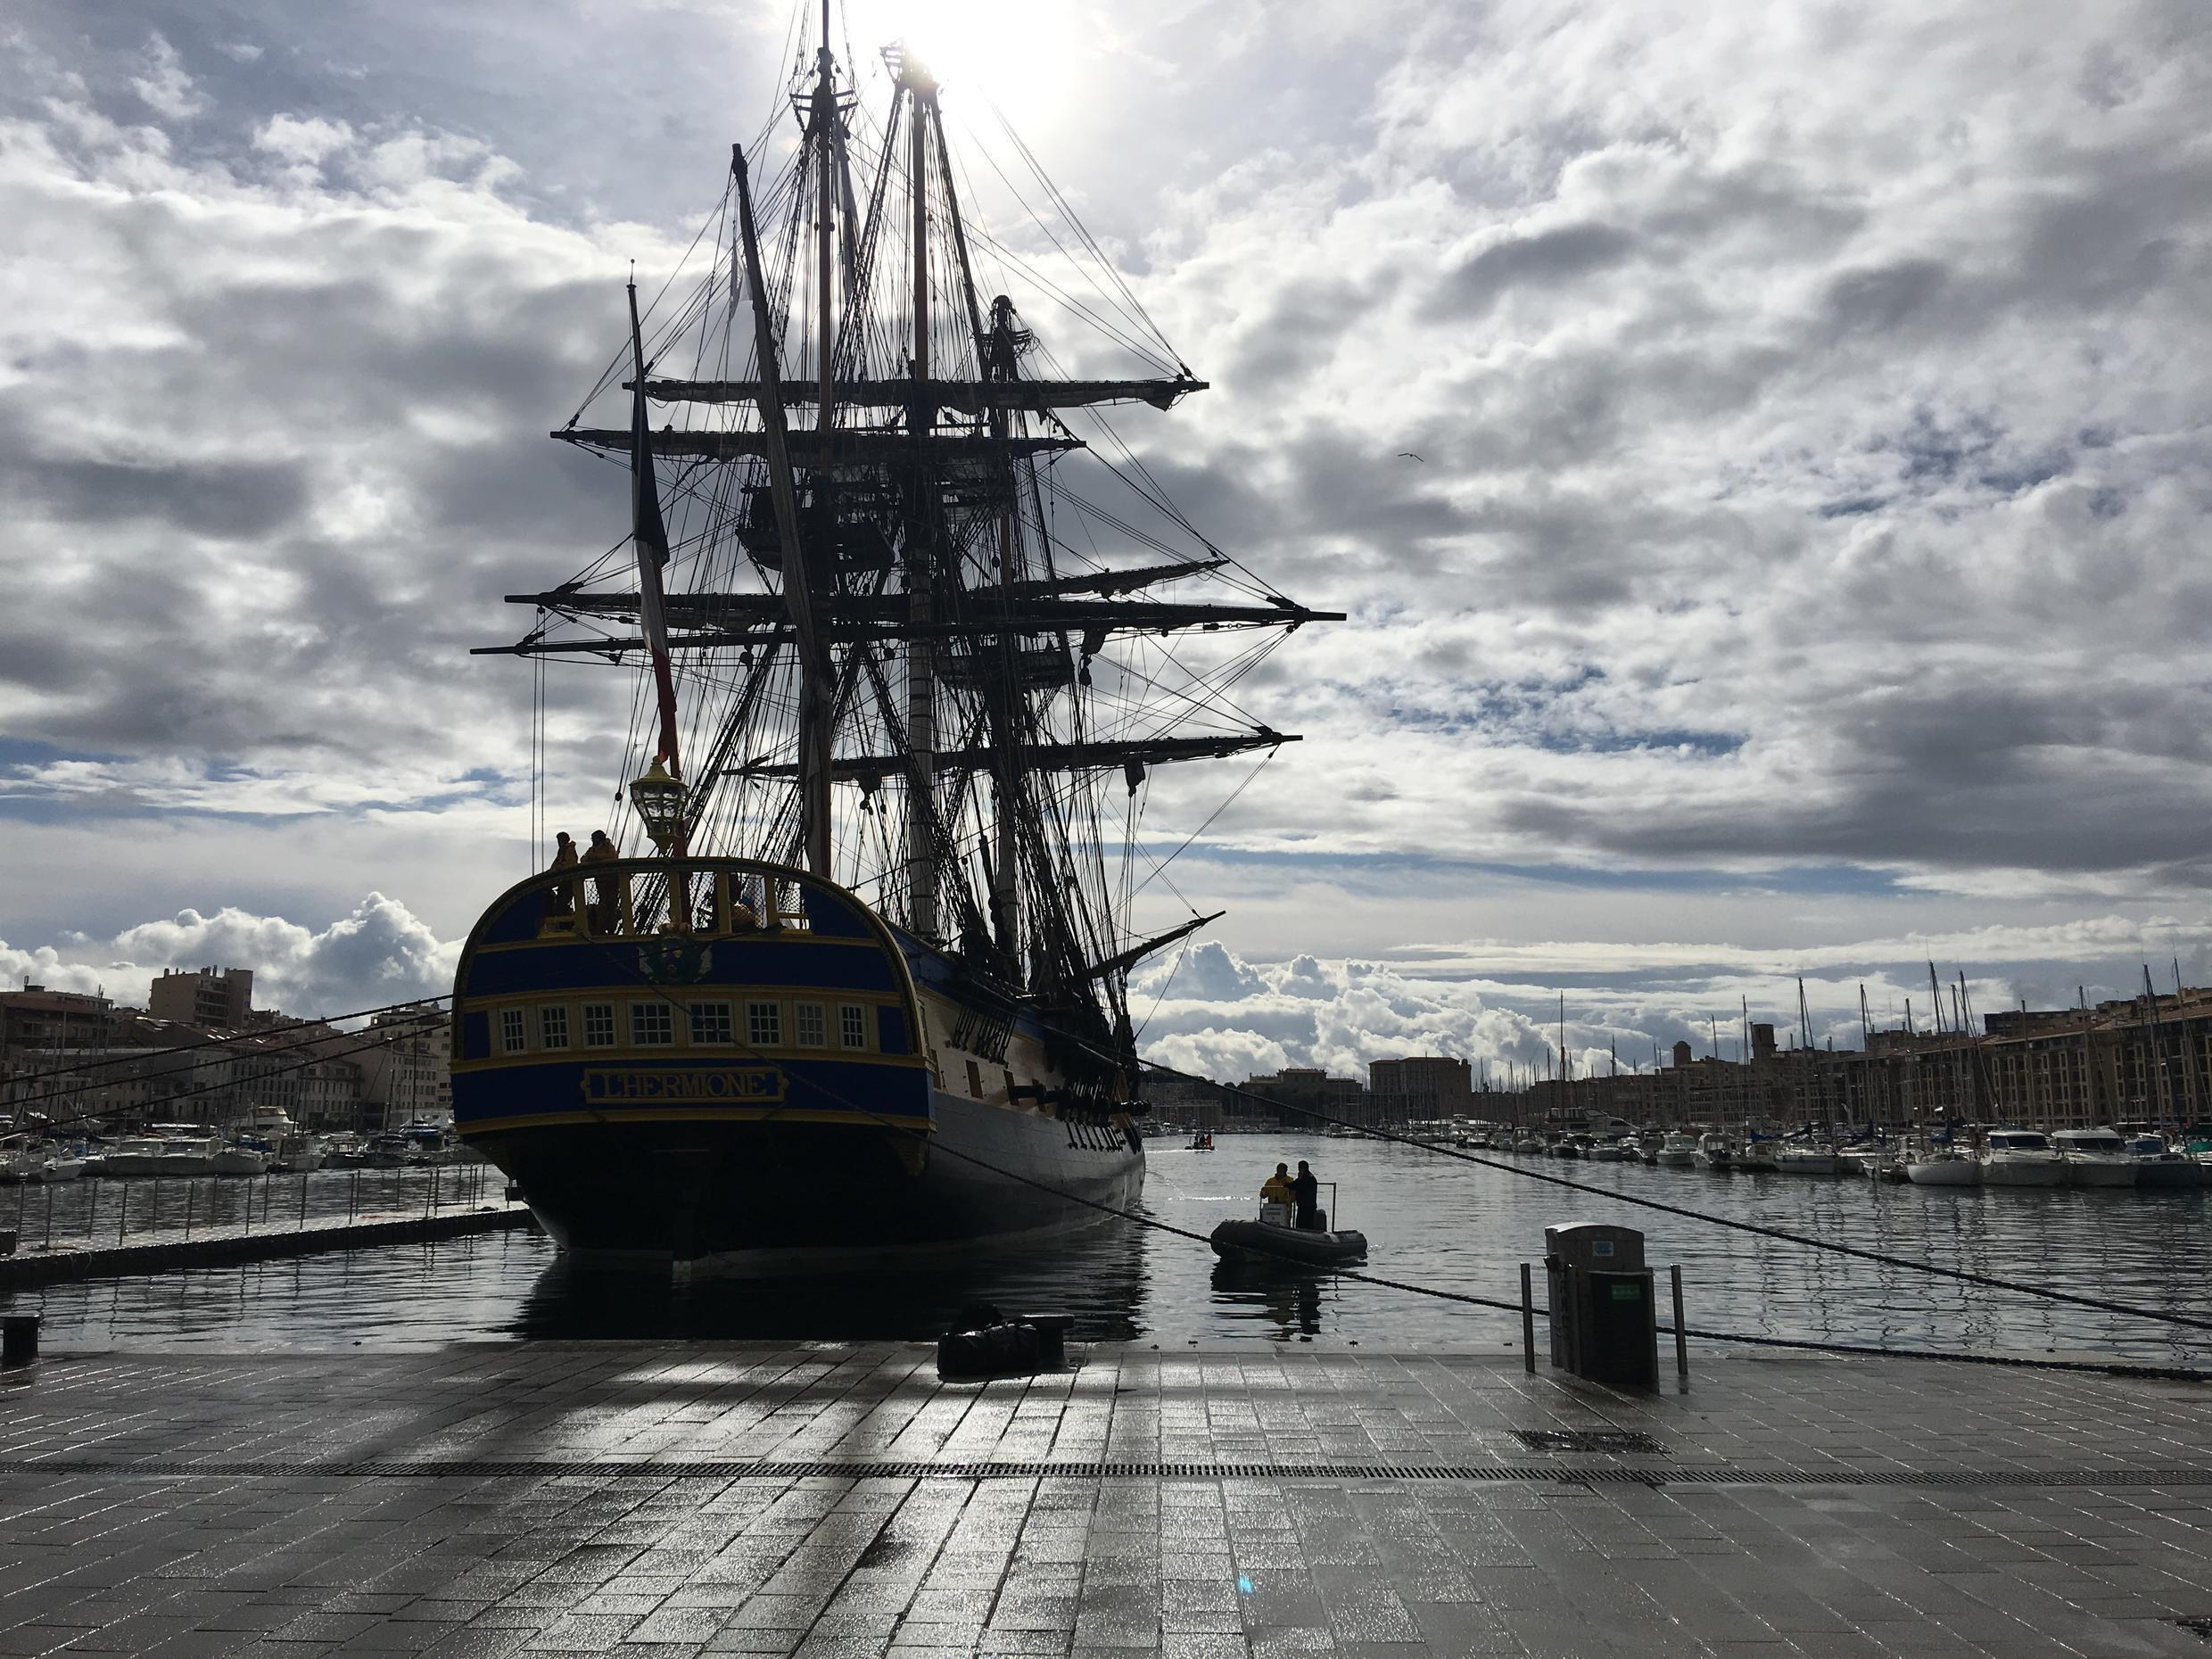 The Hermione is docked in the port of Marseille, southern France on 12 April, 2018.